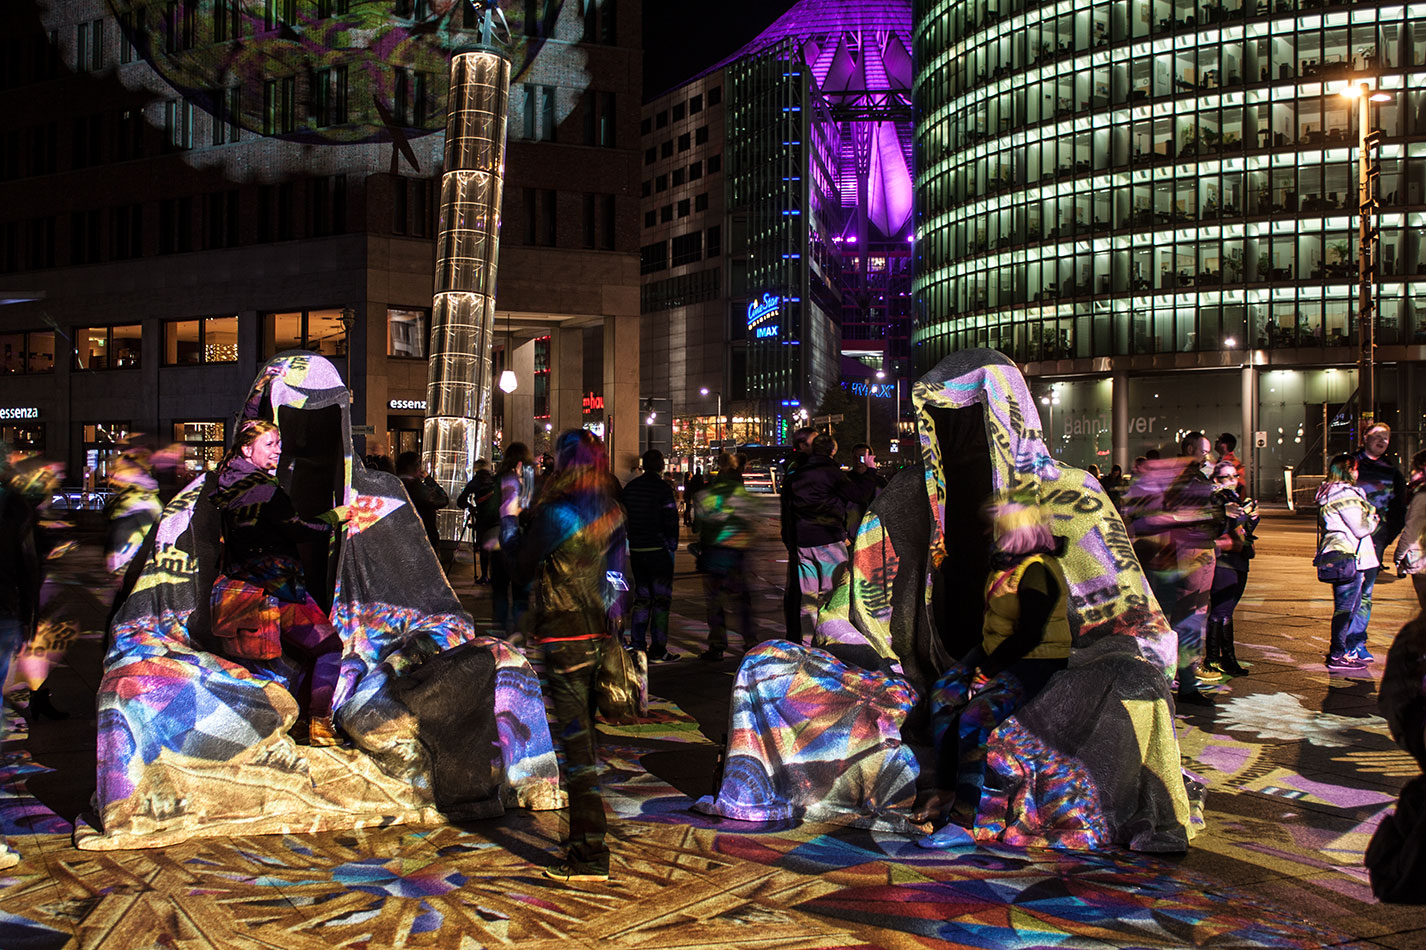 festival-of-lights-berlin-potzdamer-platz-light-art-show-exhibition-lumina-guardians-of-time-manfred-kili-kielnhofer-contemporary-arts-design-large-scale-monumental-public-sculpture-3672